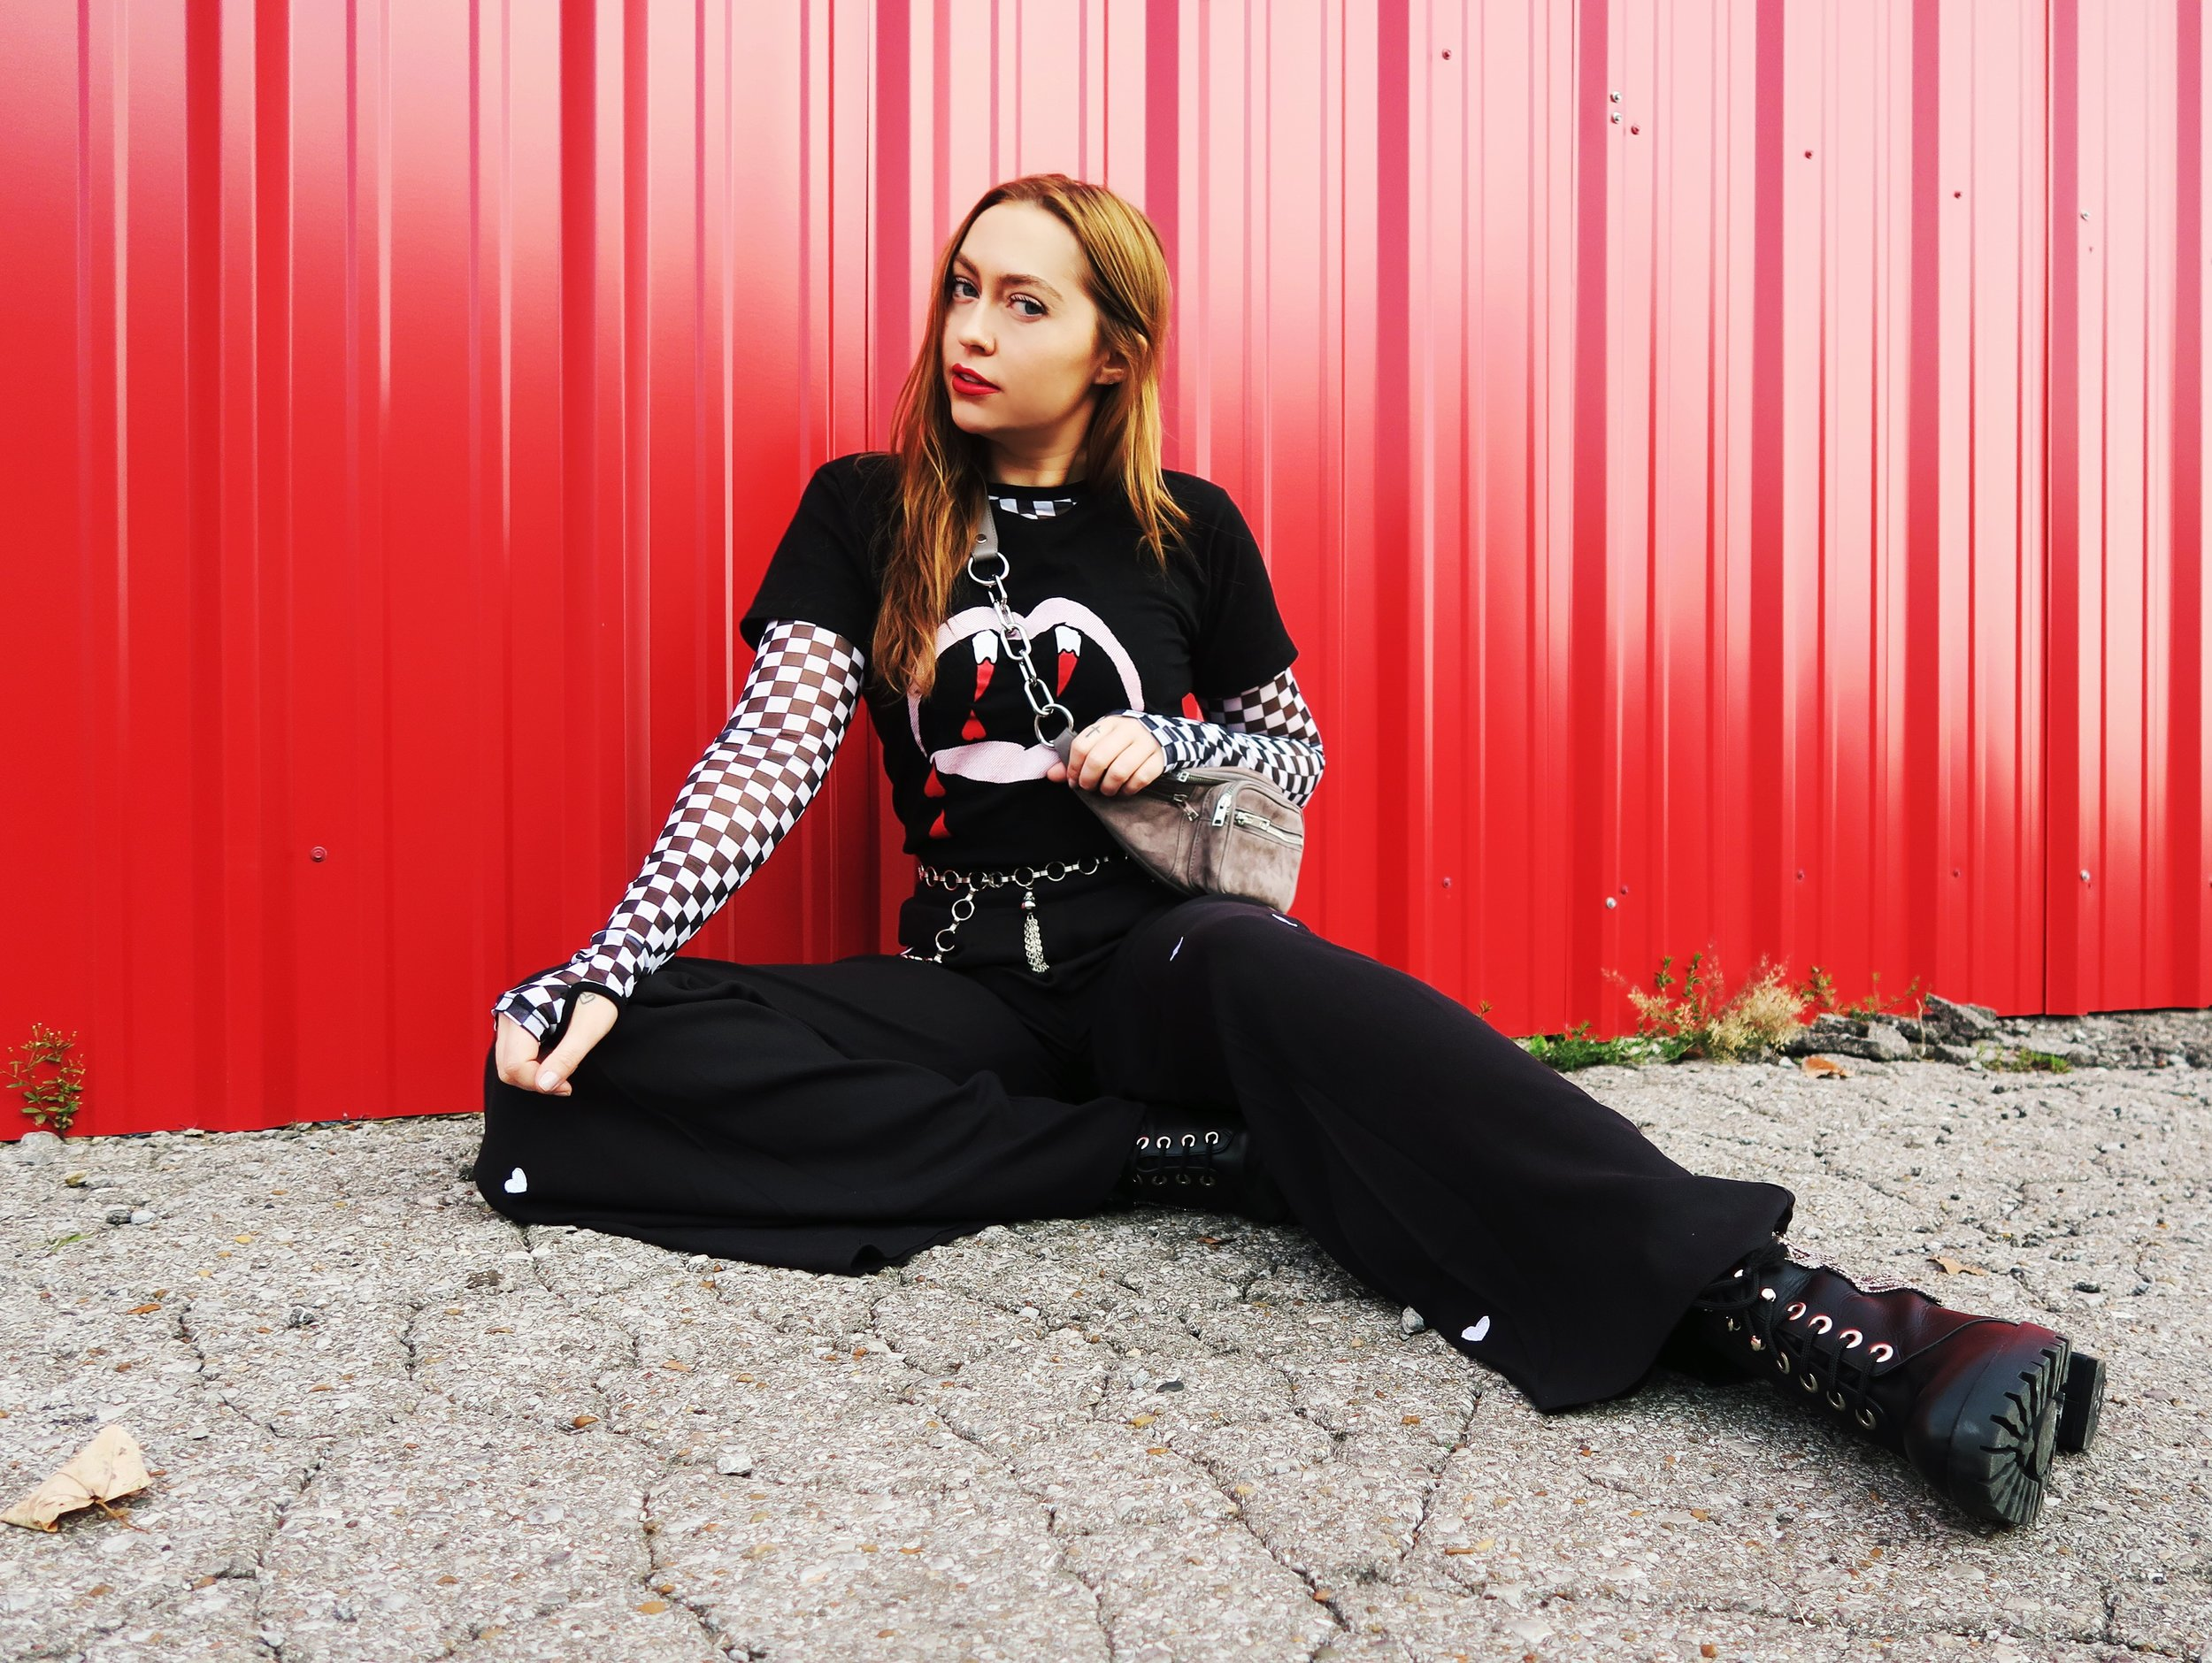 L/S Top - Dollskill | Tee - YSL | Pants - Wildfox | Boots - Gewebe | Bag - Alexander Wang